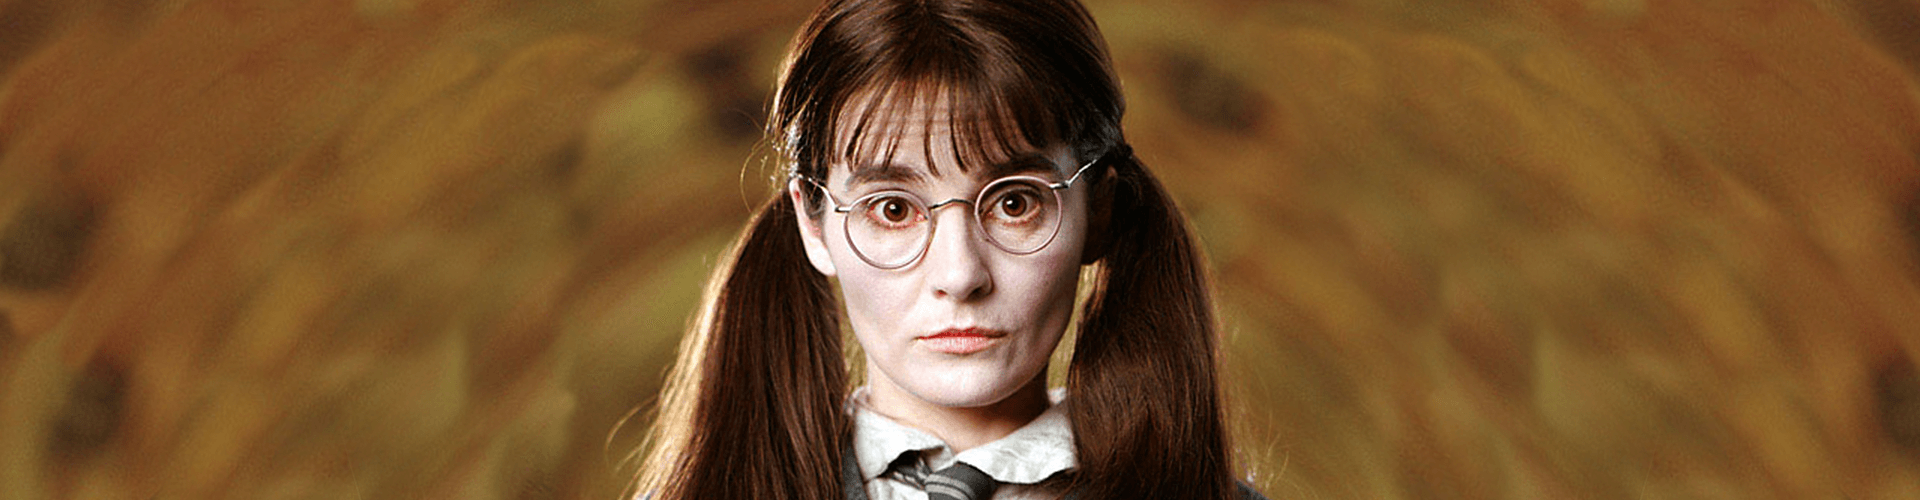 20 things you never knew about Harry Potter